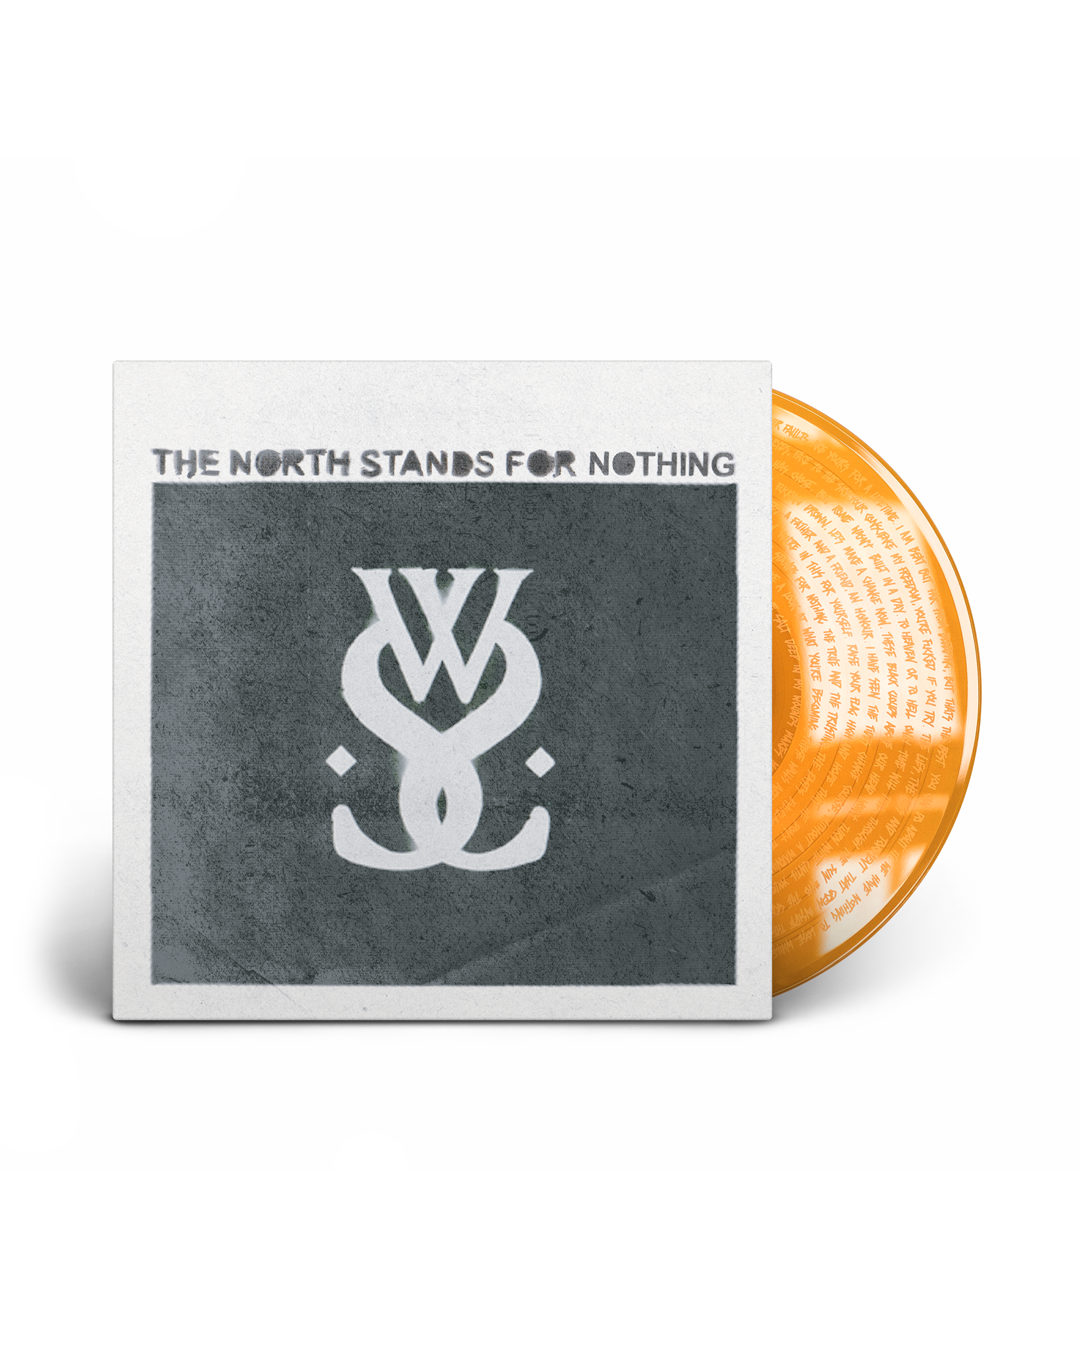 THE NORTH STANDS FOR NOTHING VINYL ORANGE